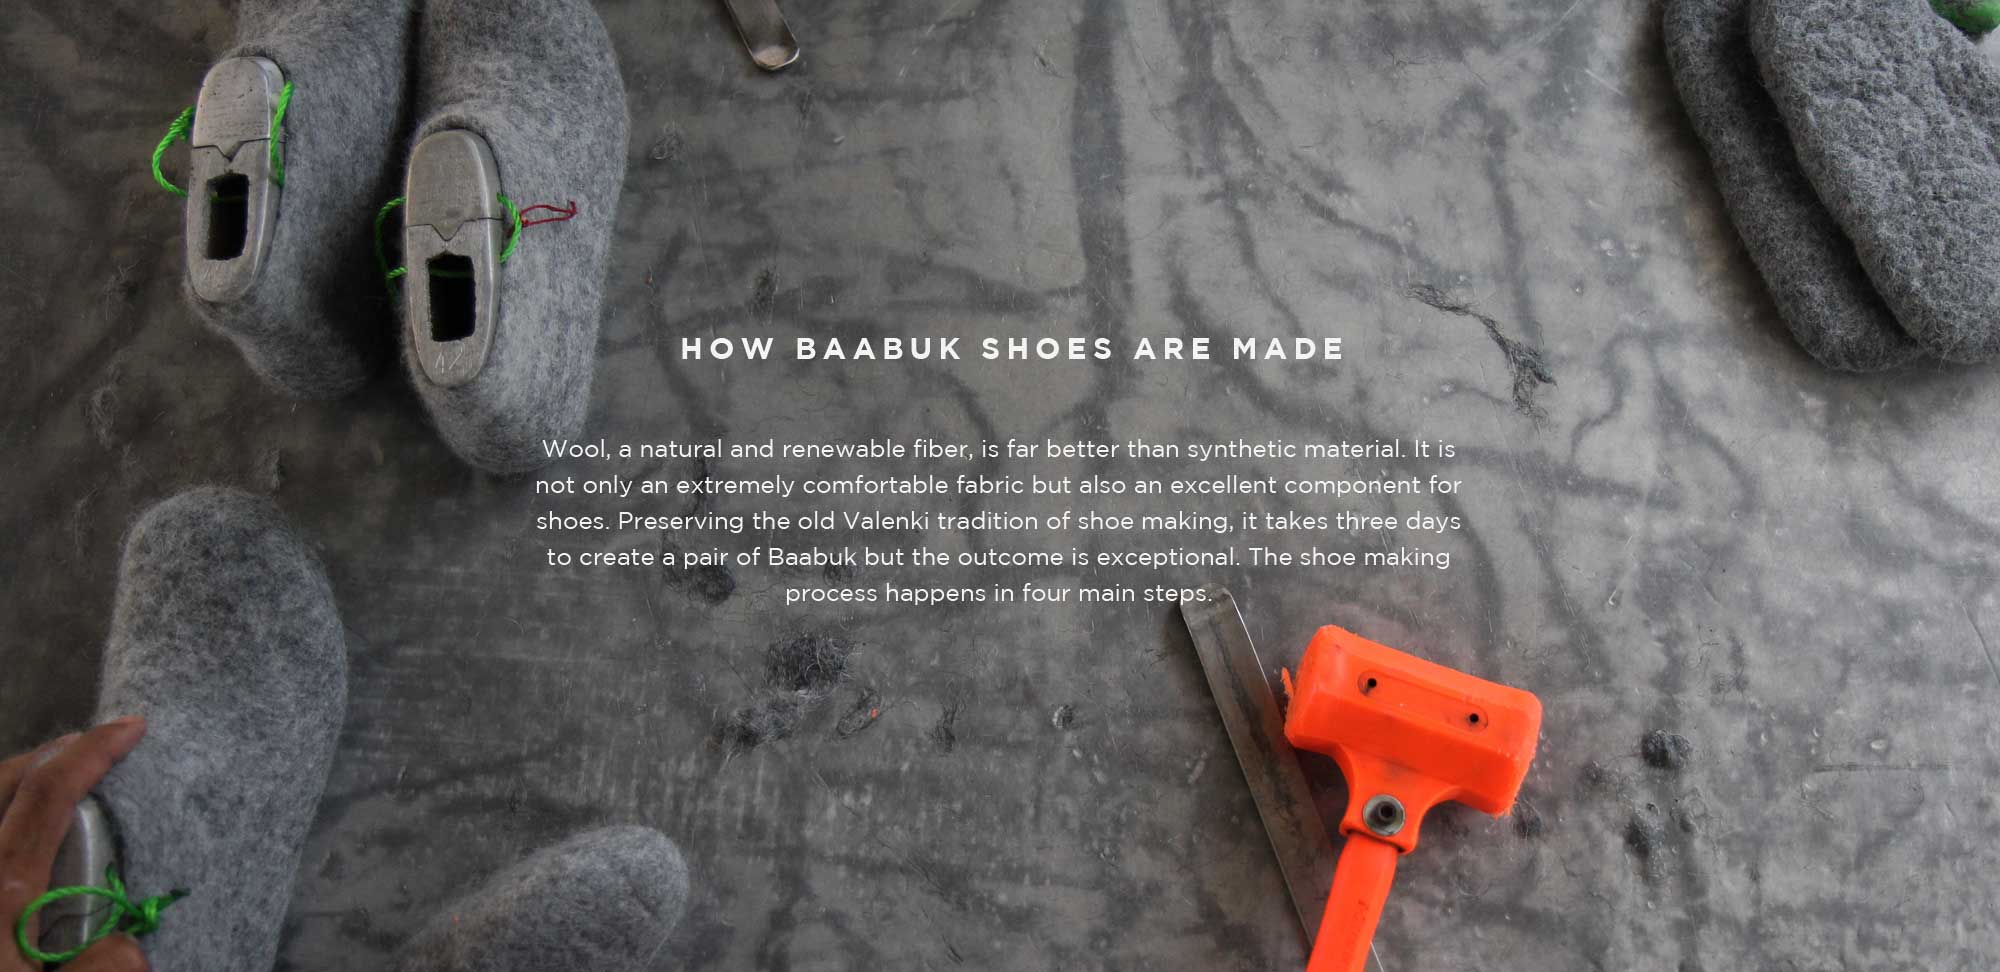 Making of Baabuk Shoes